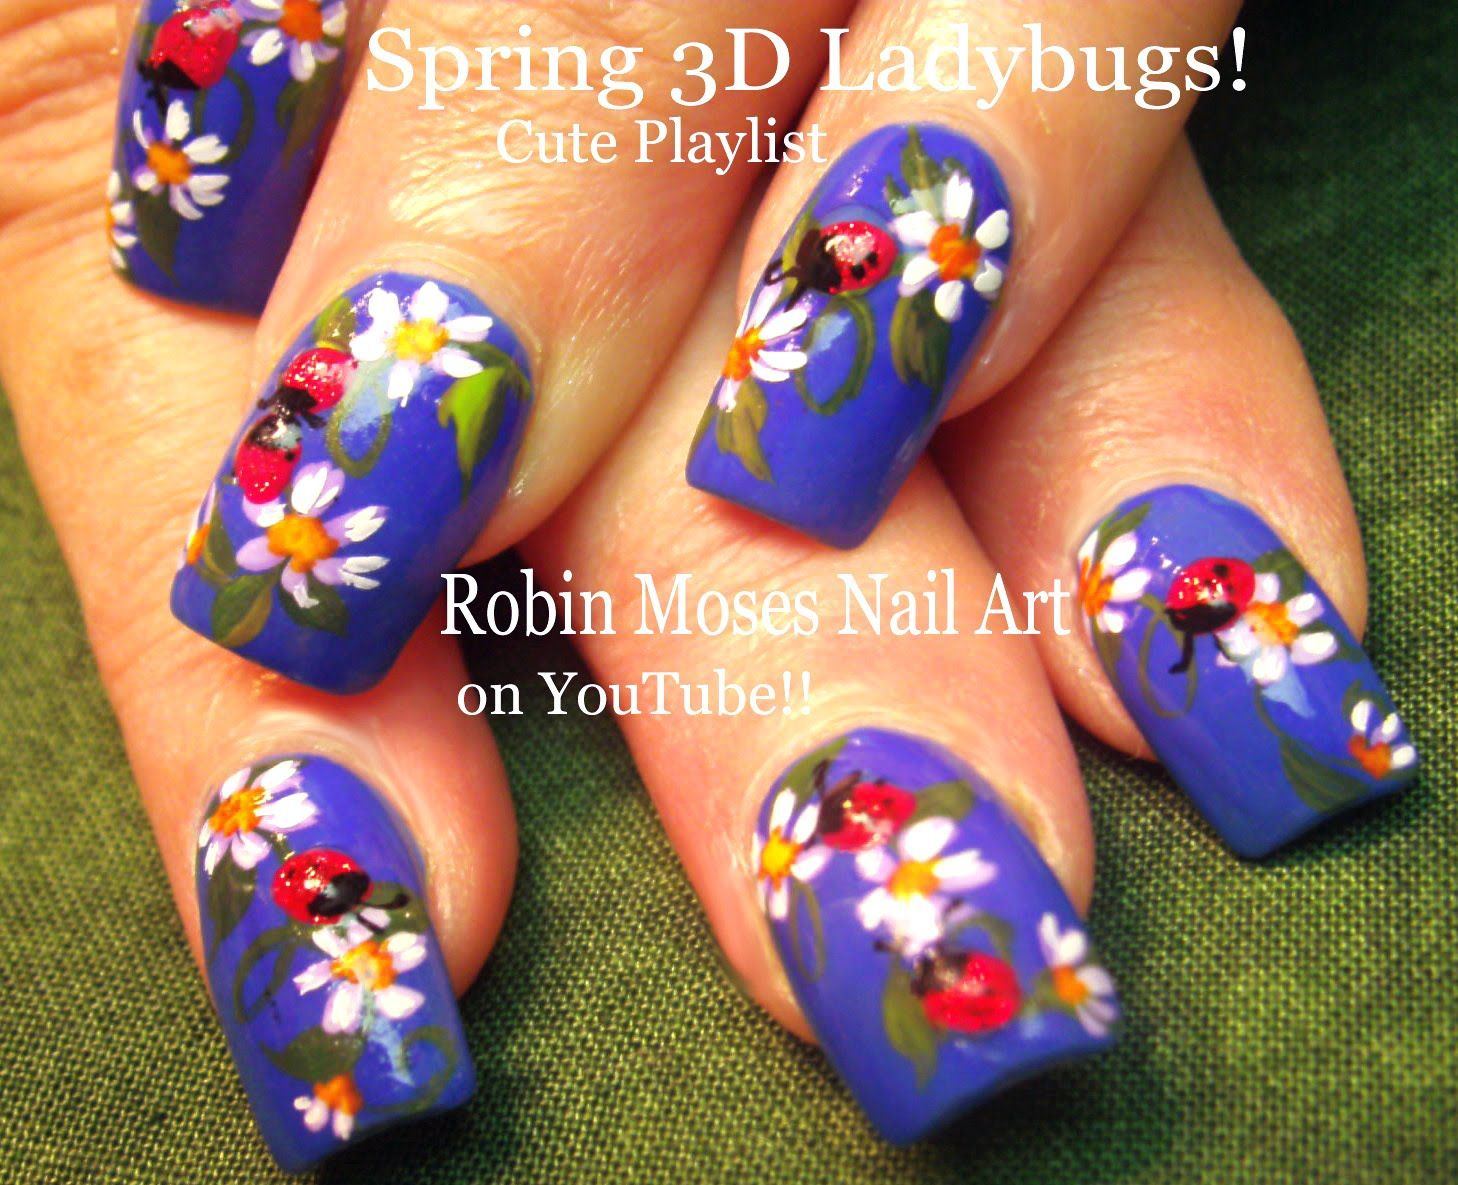 Nail Art! Fun Ladybug and Daisy Nails! 3d Nail Design using Gel ...